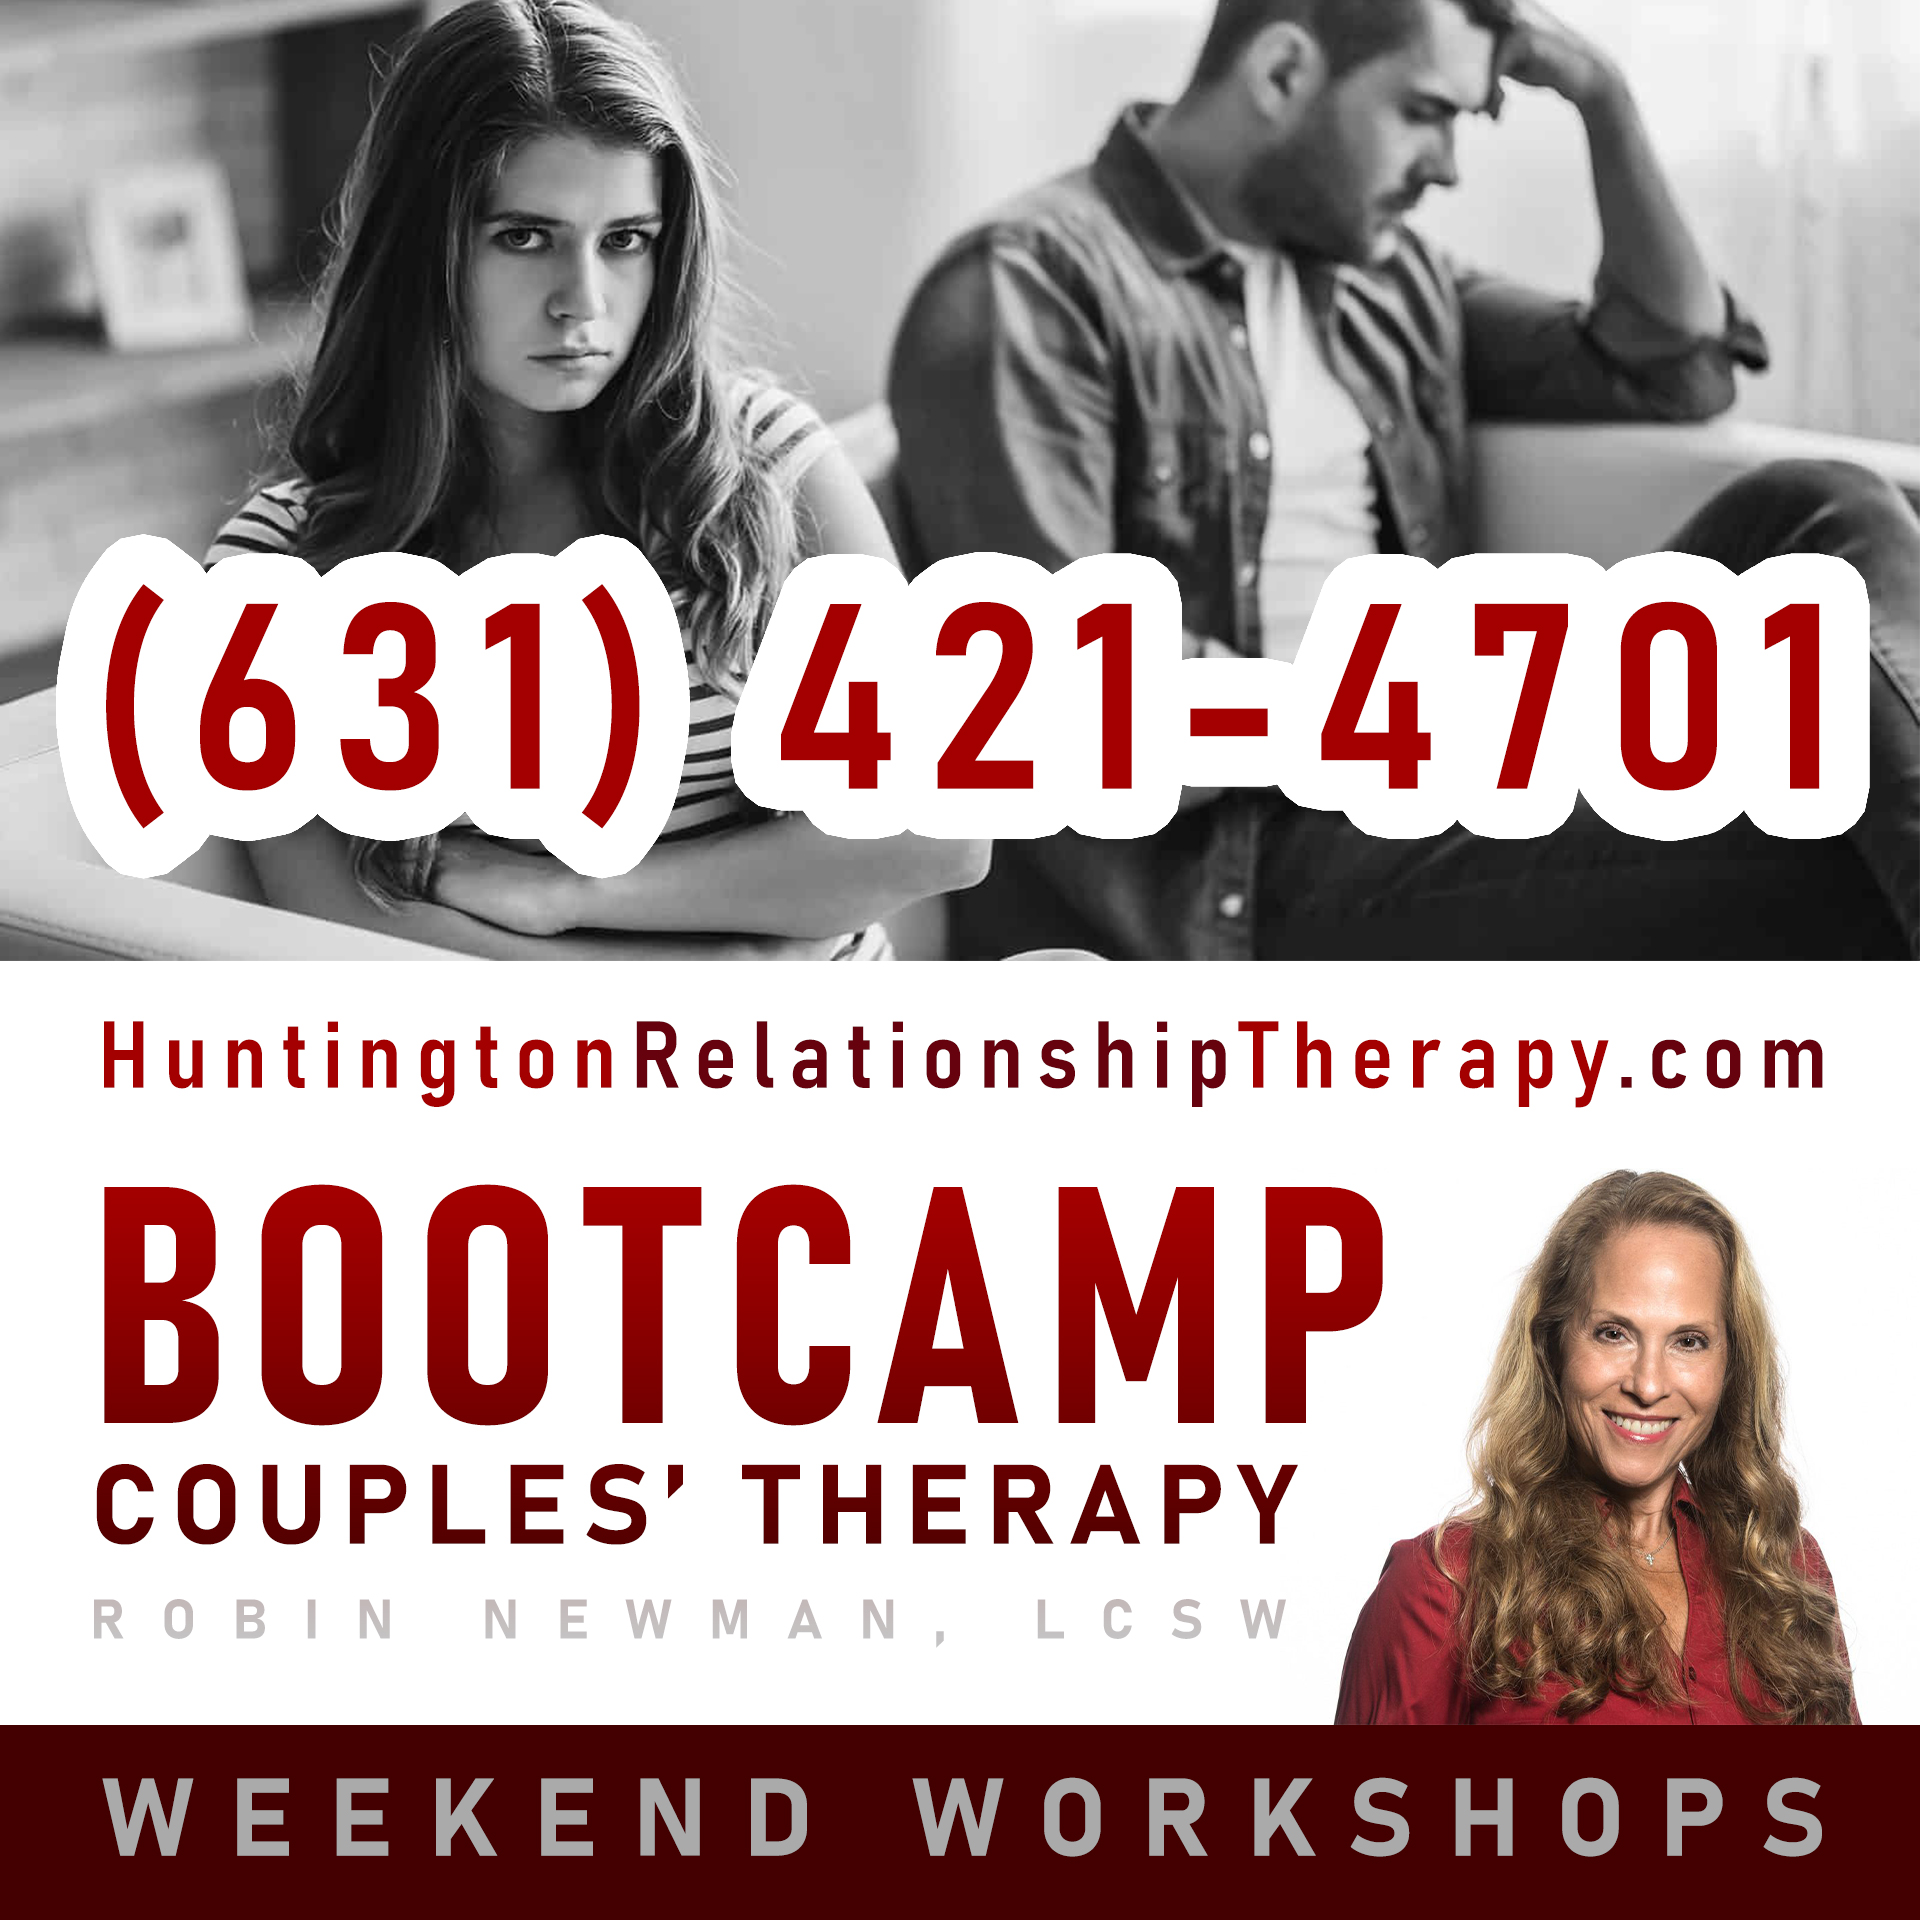 bootcamp couples therapy